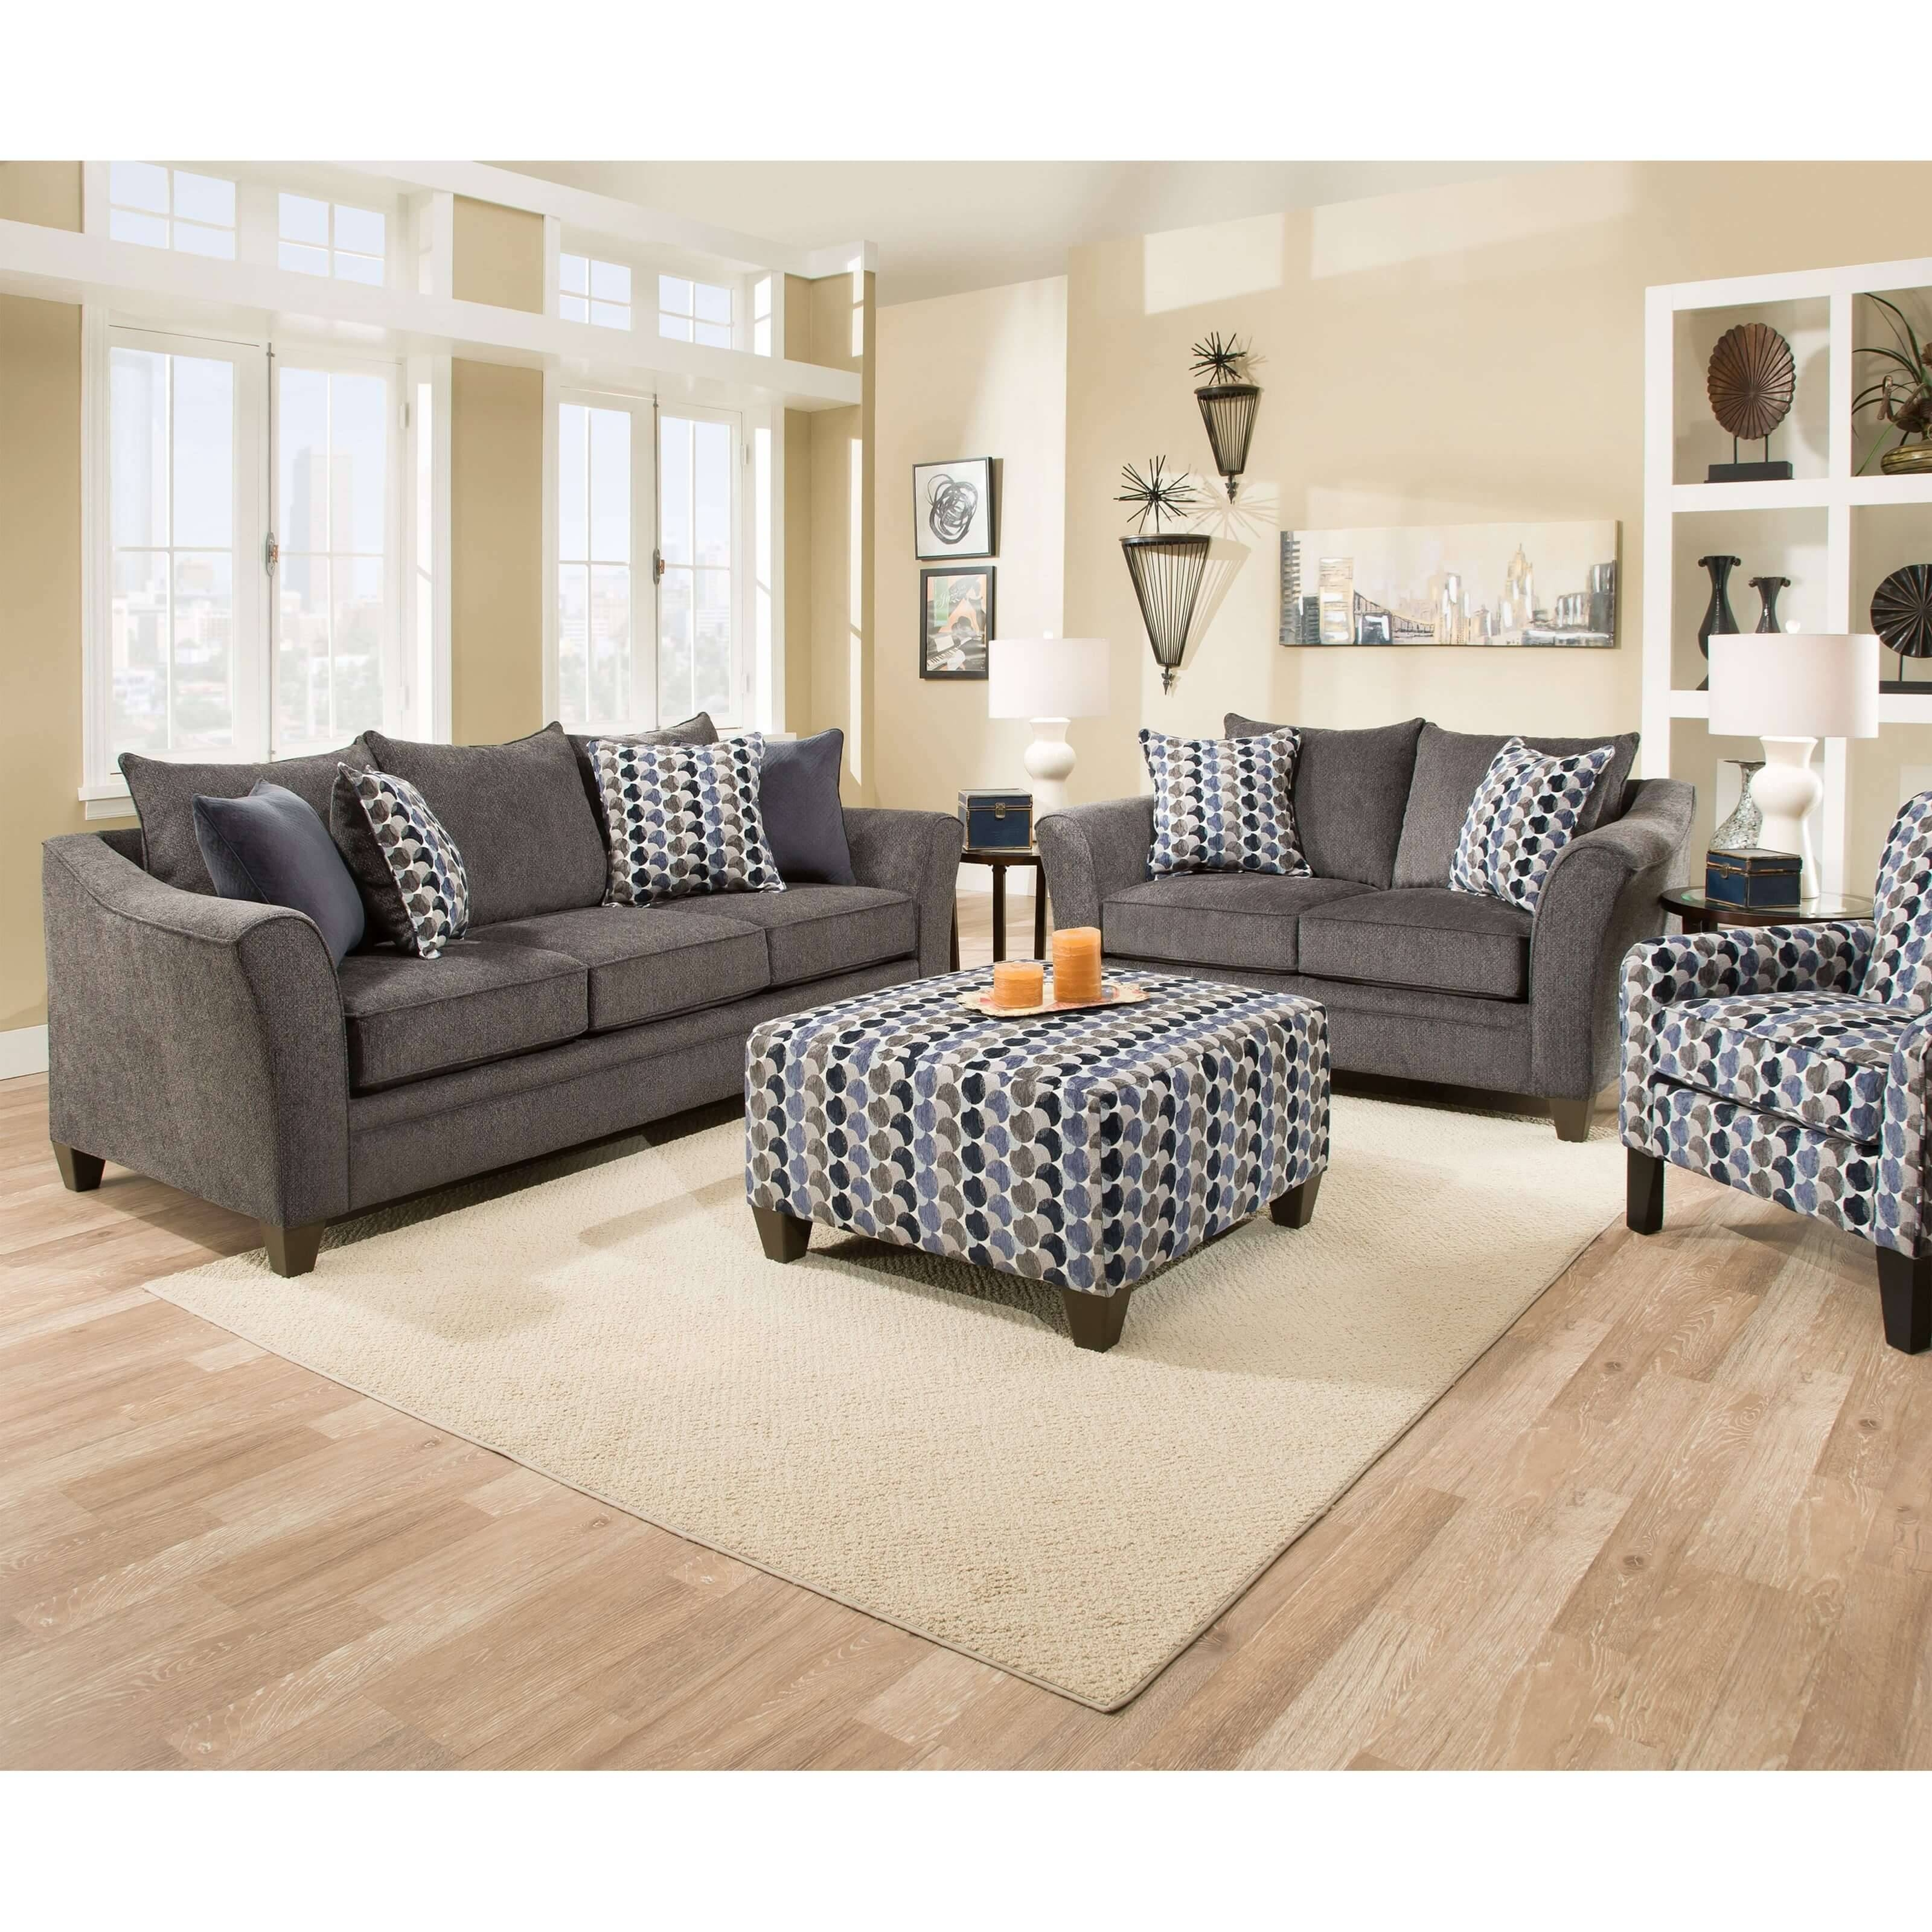 Furniture: Simmons Couch | Grey Sofa And Loveseat Set | Big Lots regarding Big Lots Simmons Furniture (Image 9 of 15)